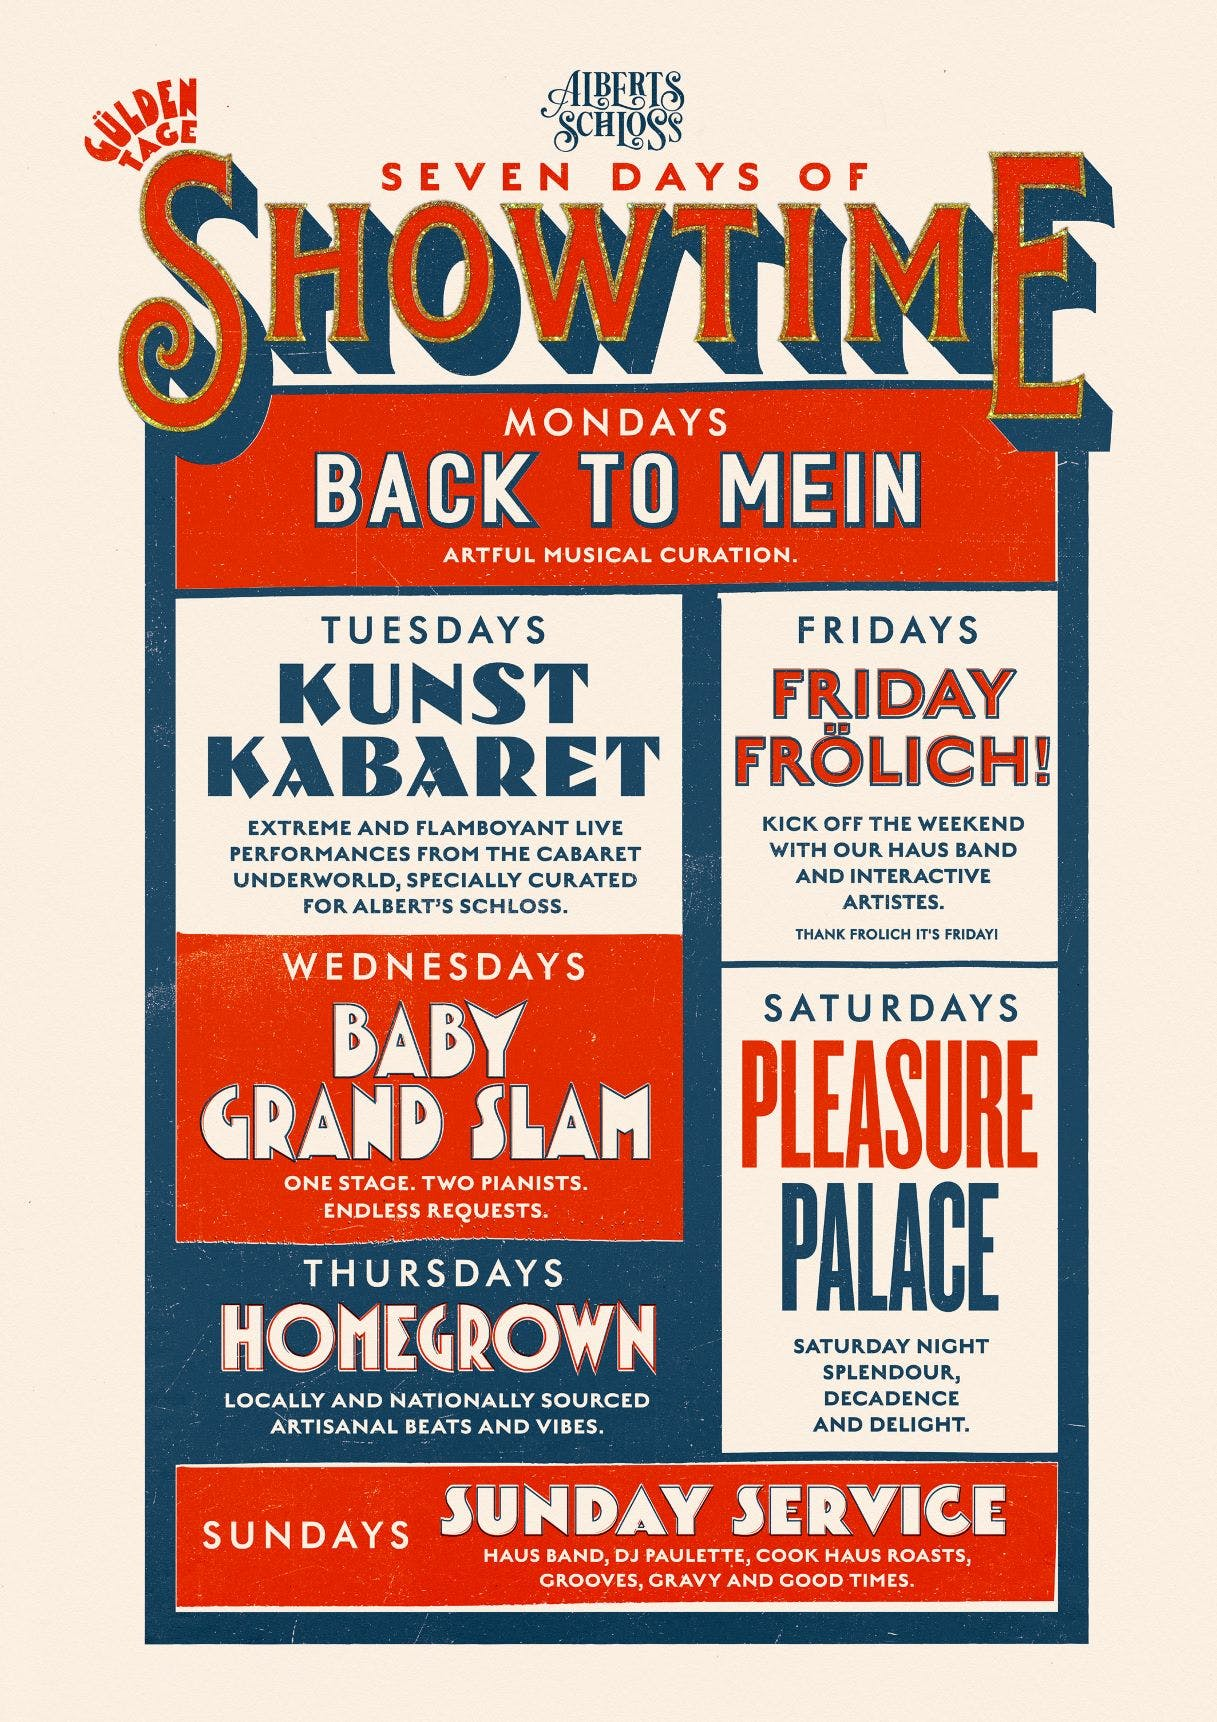 SEVEN DAYS OF SHOWTIME